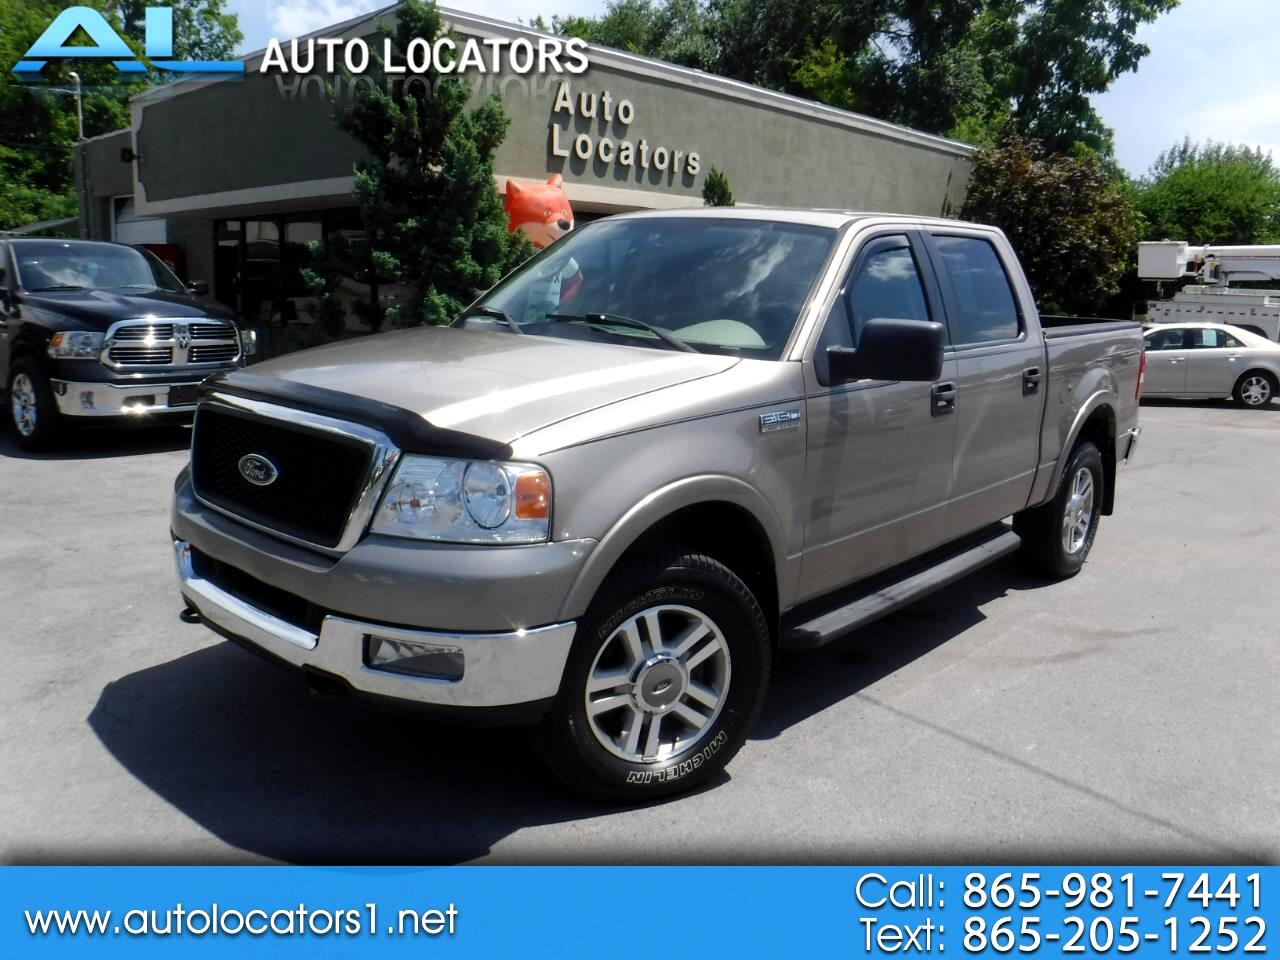 2005 Ford F-150 SuperCrew Lariat 4WD